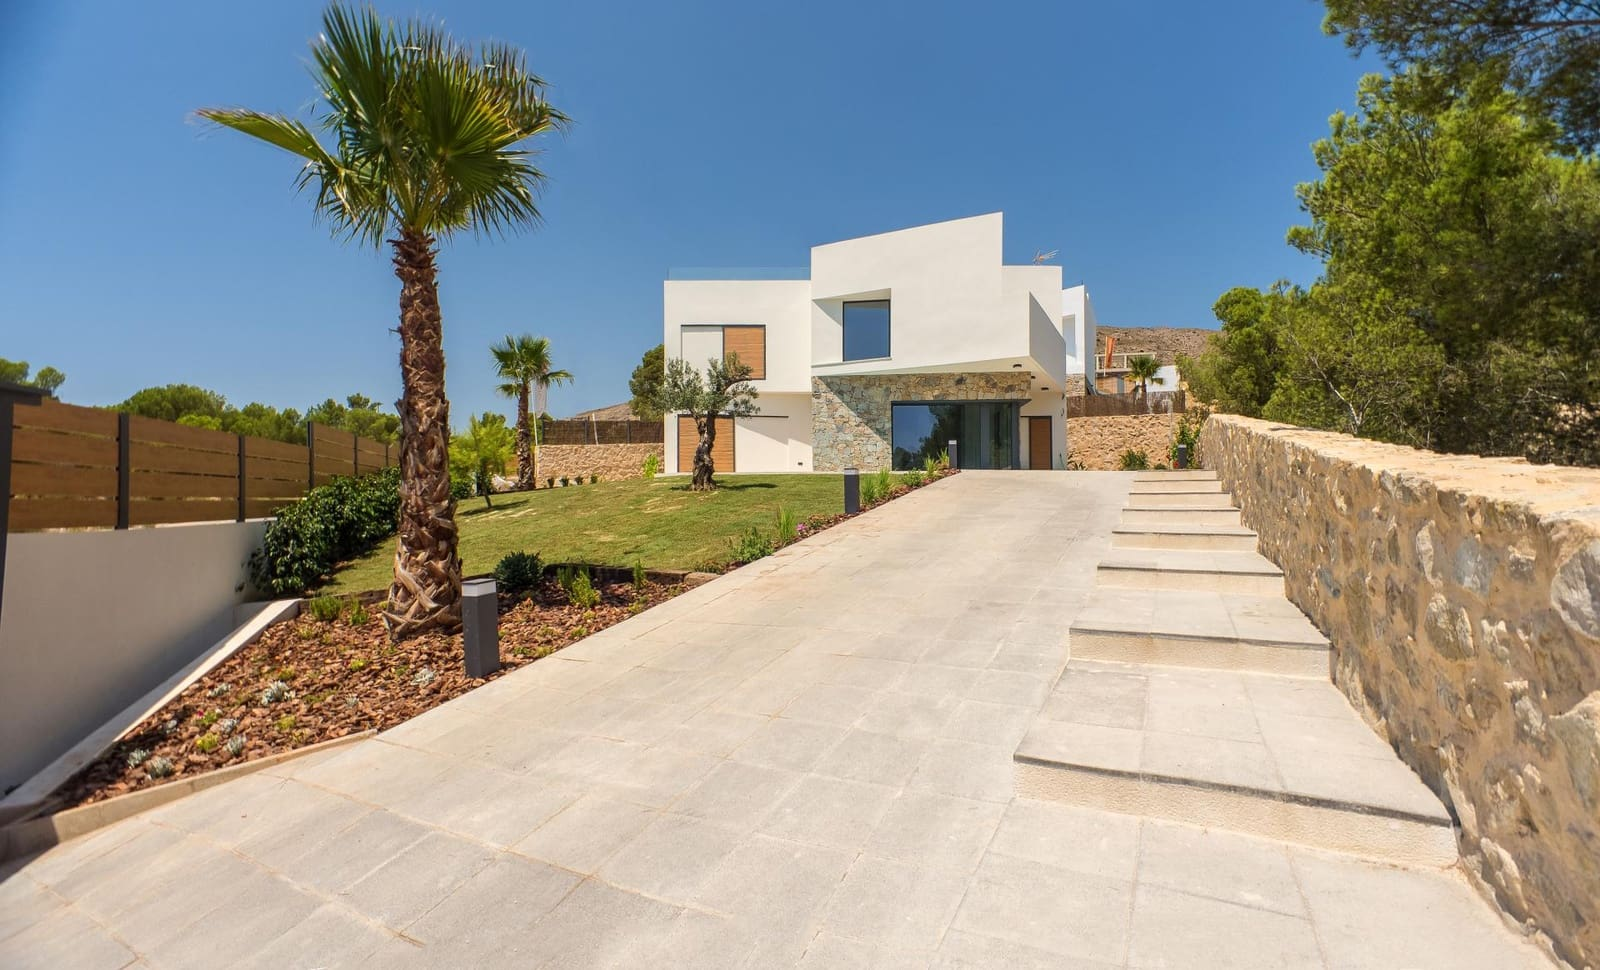 4 bedroom Villa for sale in Finestrat with pool - € 675,000 (Ref: 4436684)